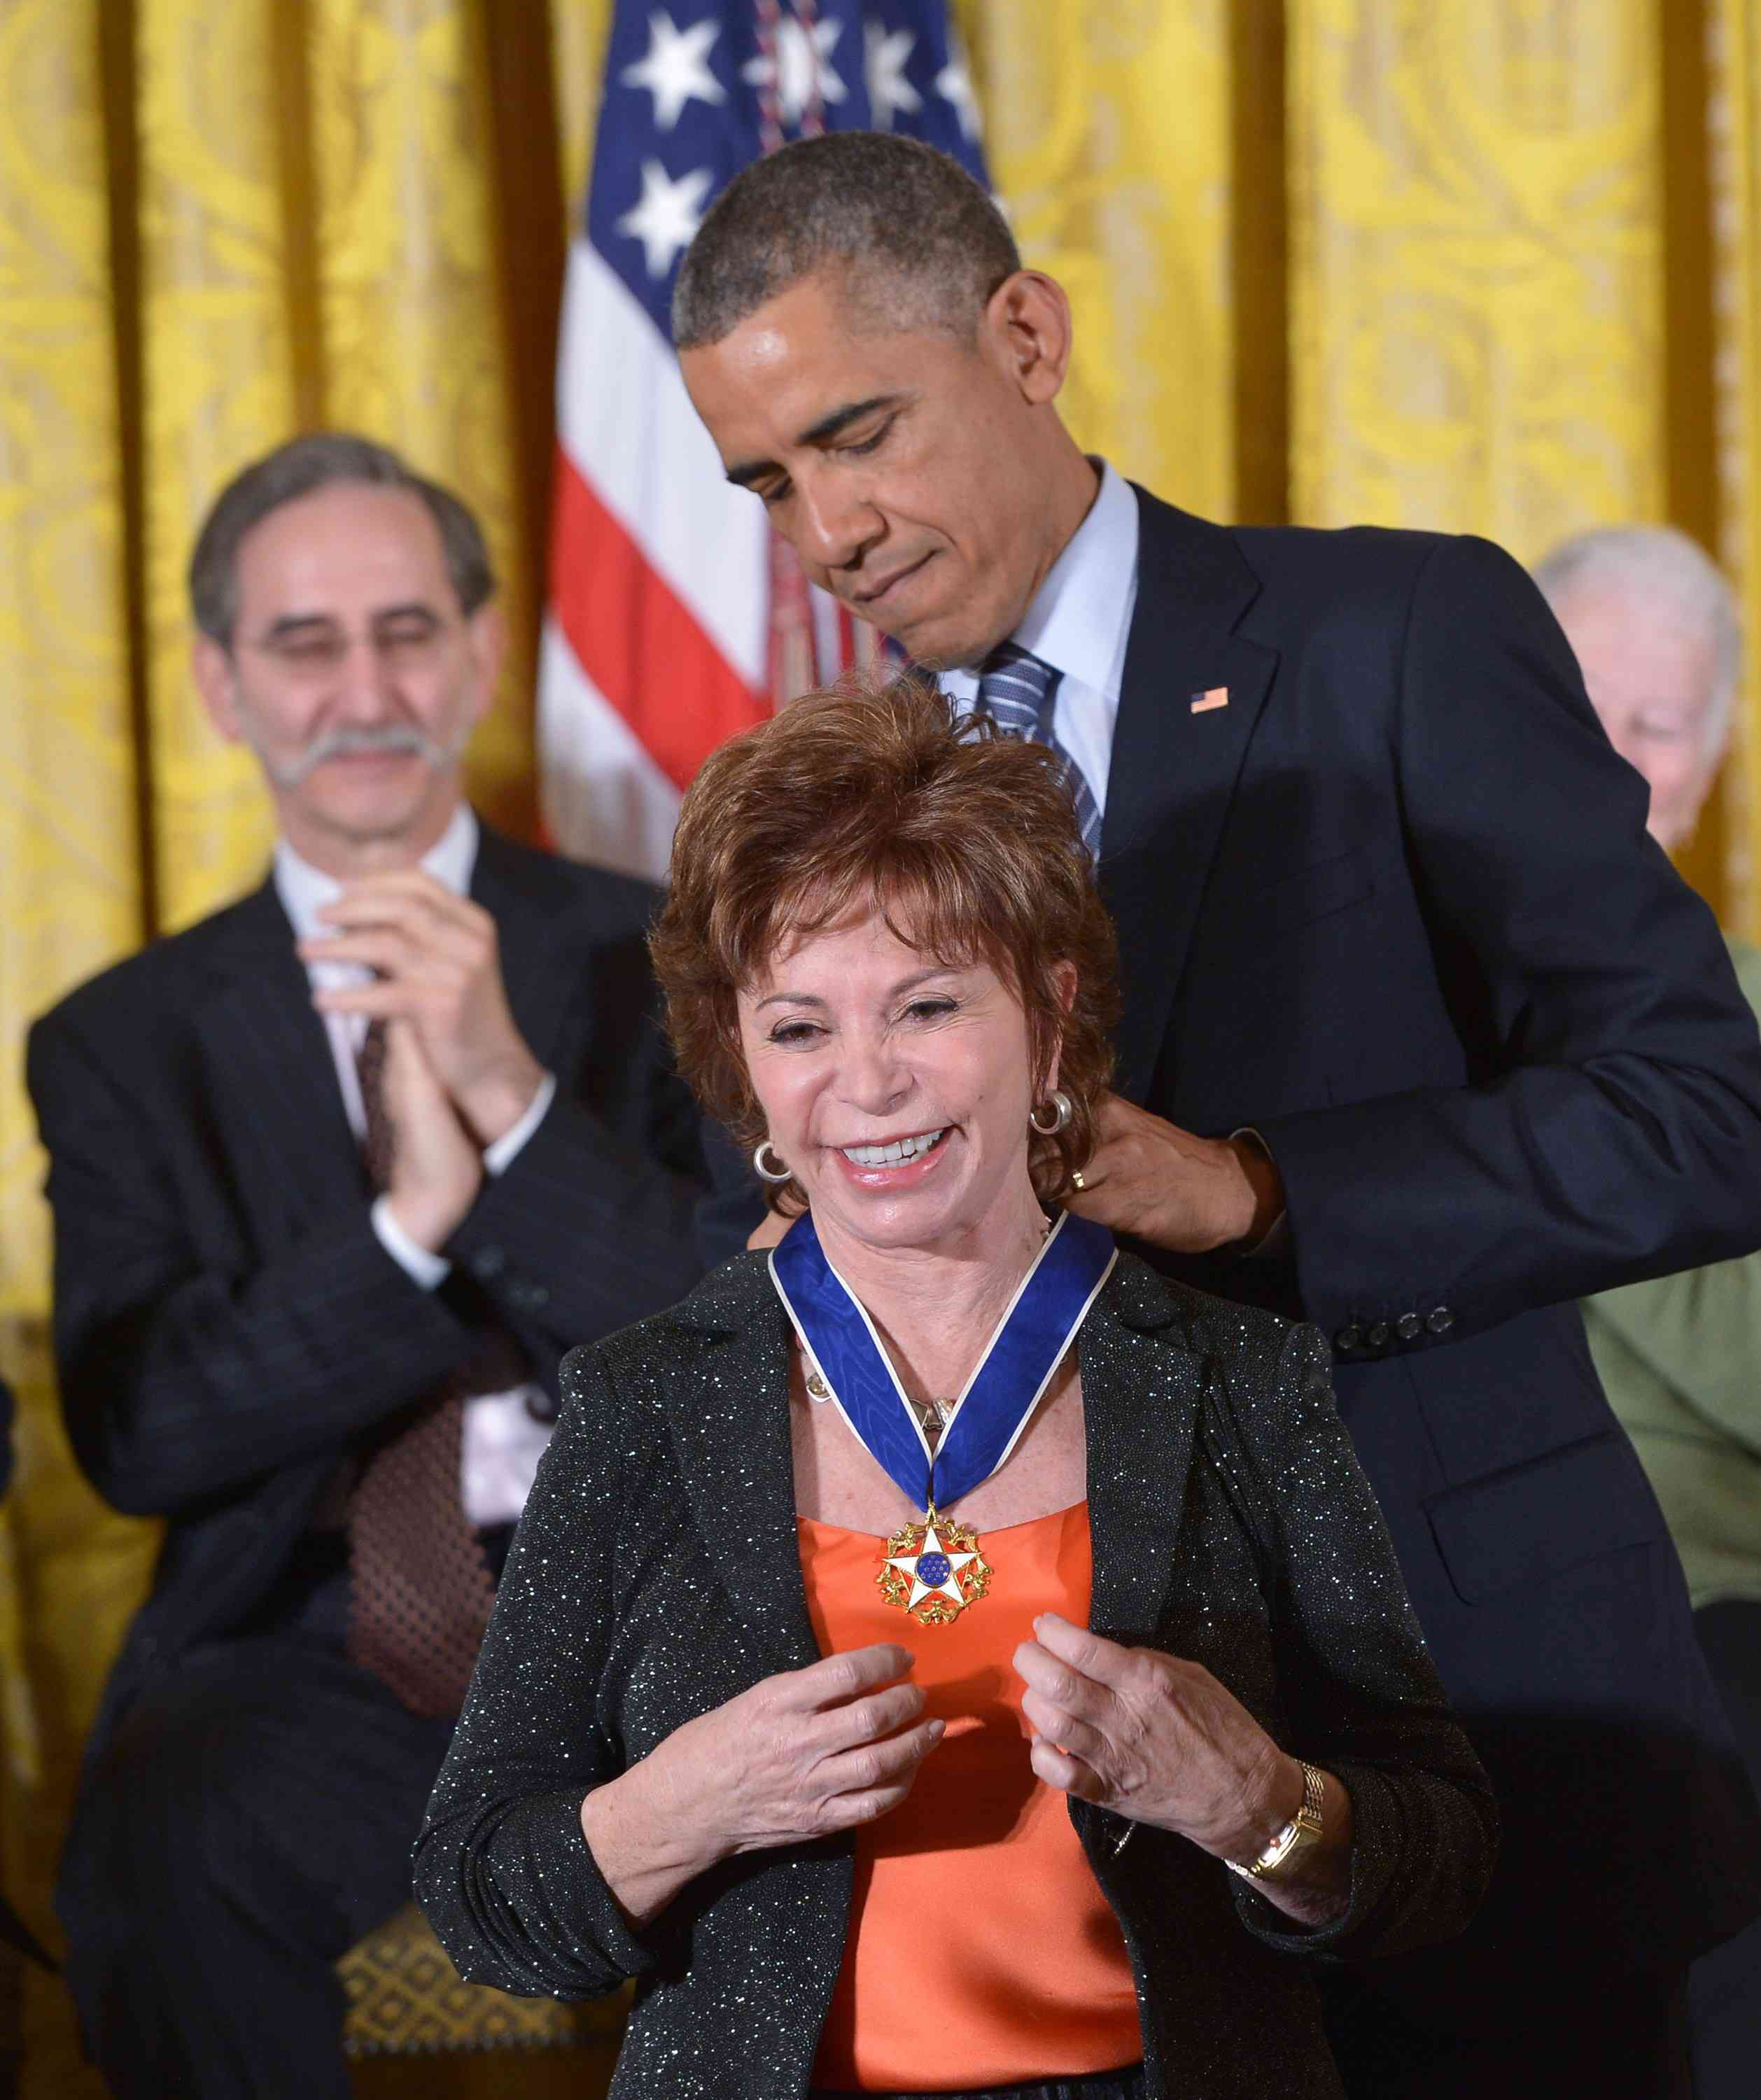 Allende receiving the Presidential Medal of Freedom from President Obama